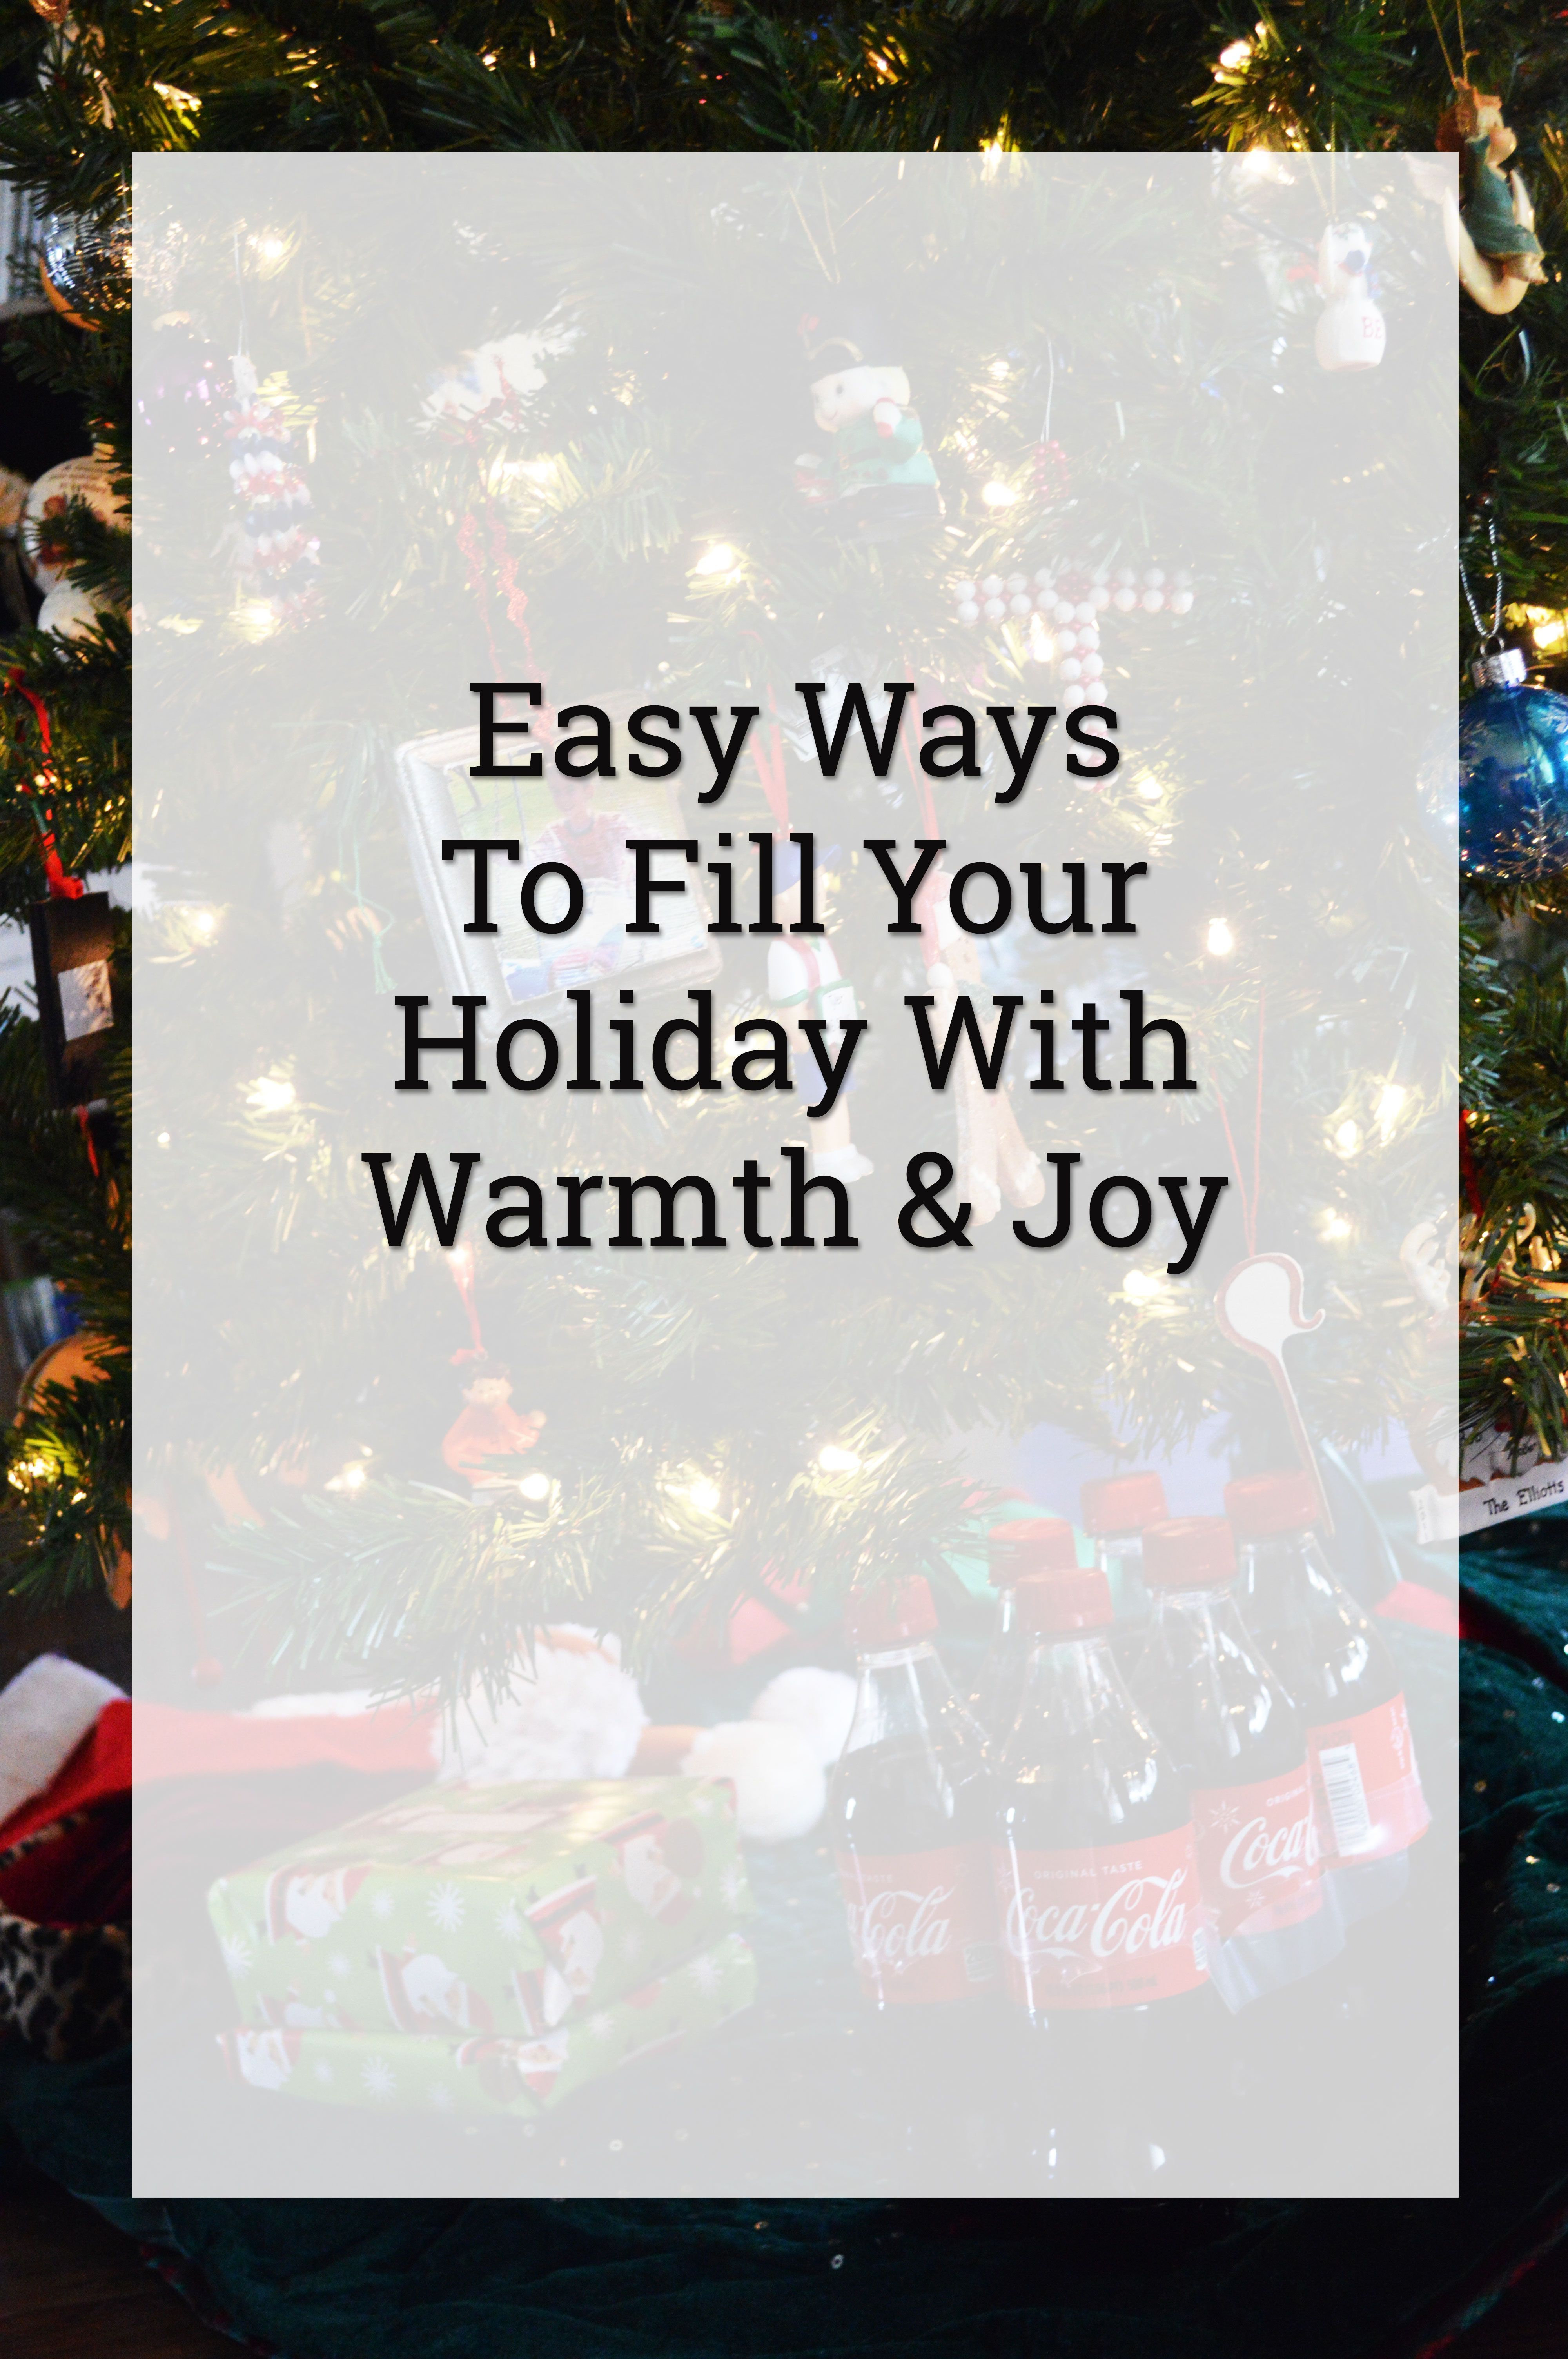 Easy Ways To Fill Your Holiday With Warmth & Joy   Holidays and Easy